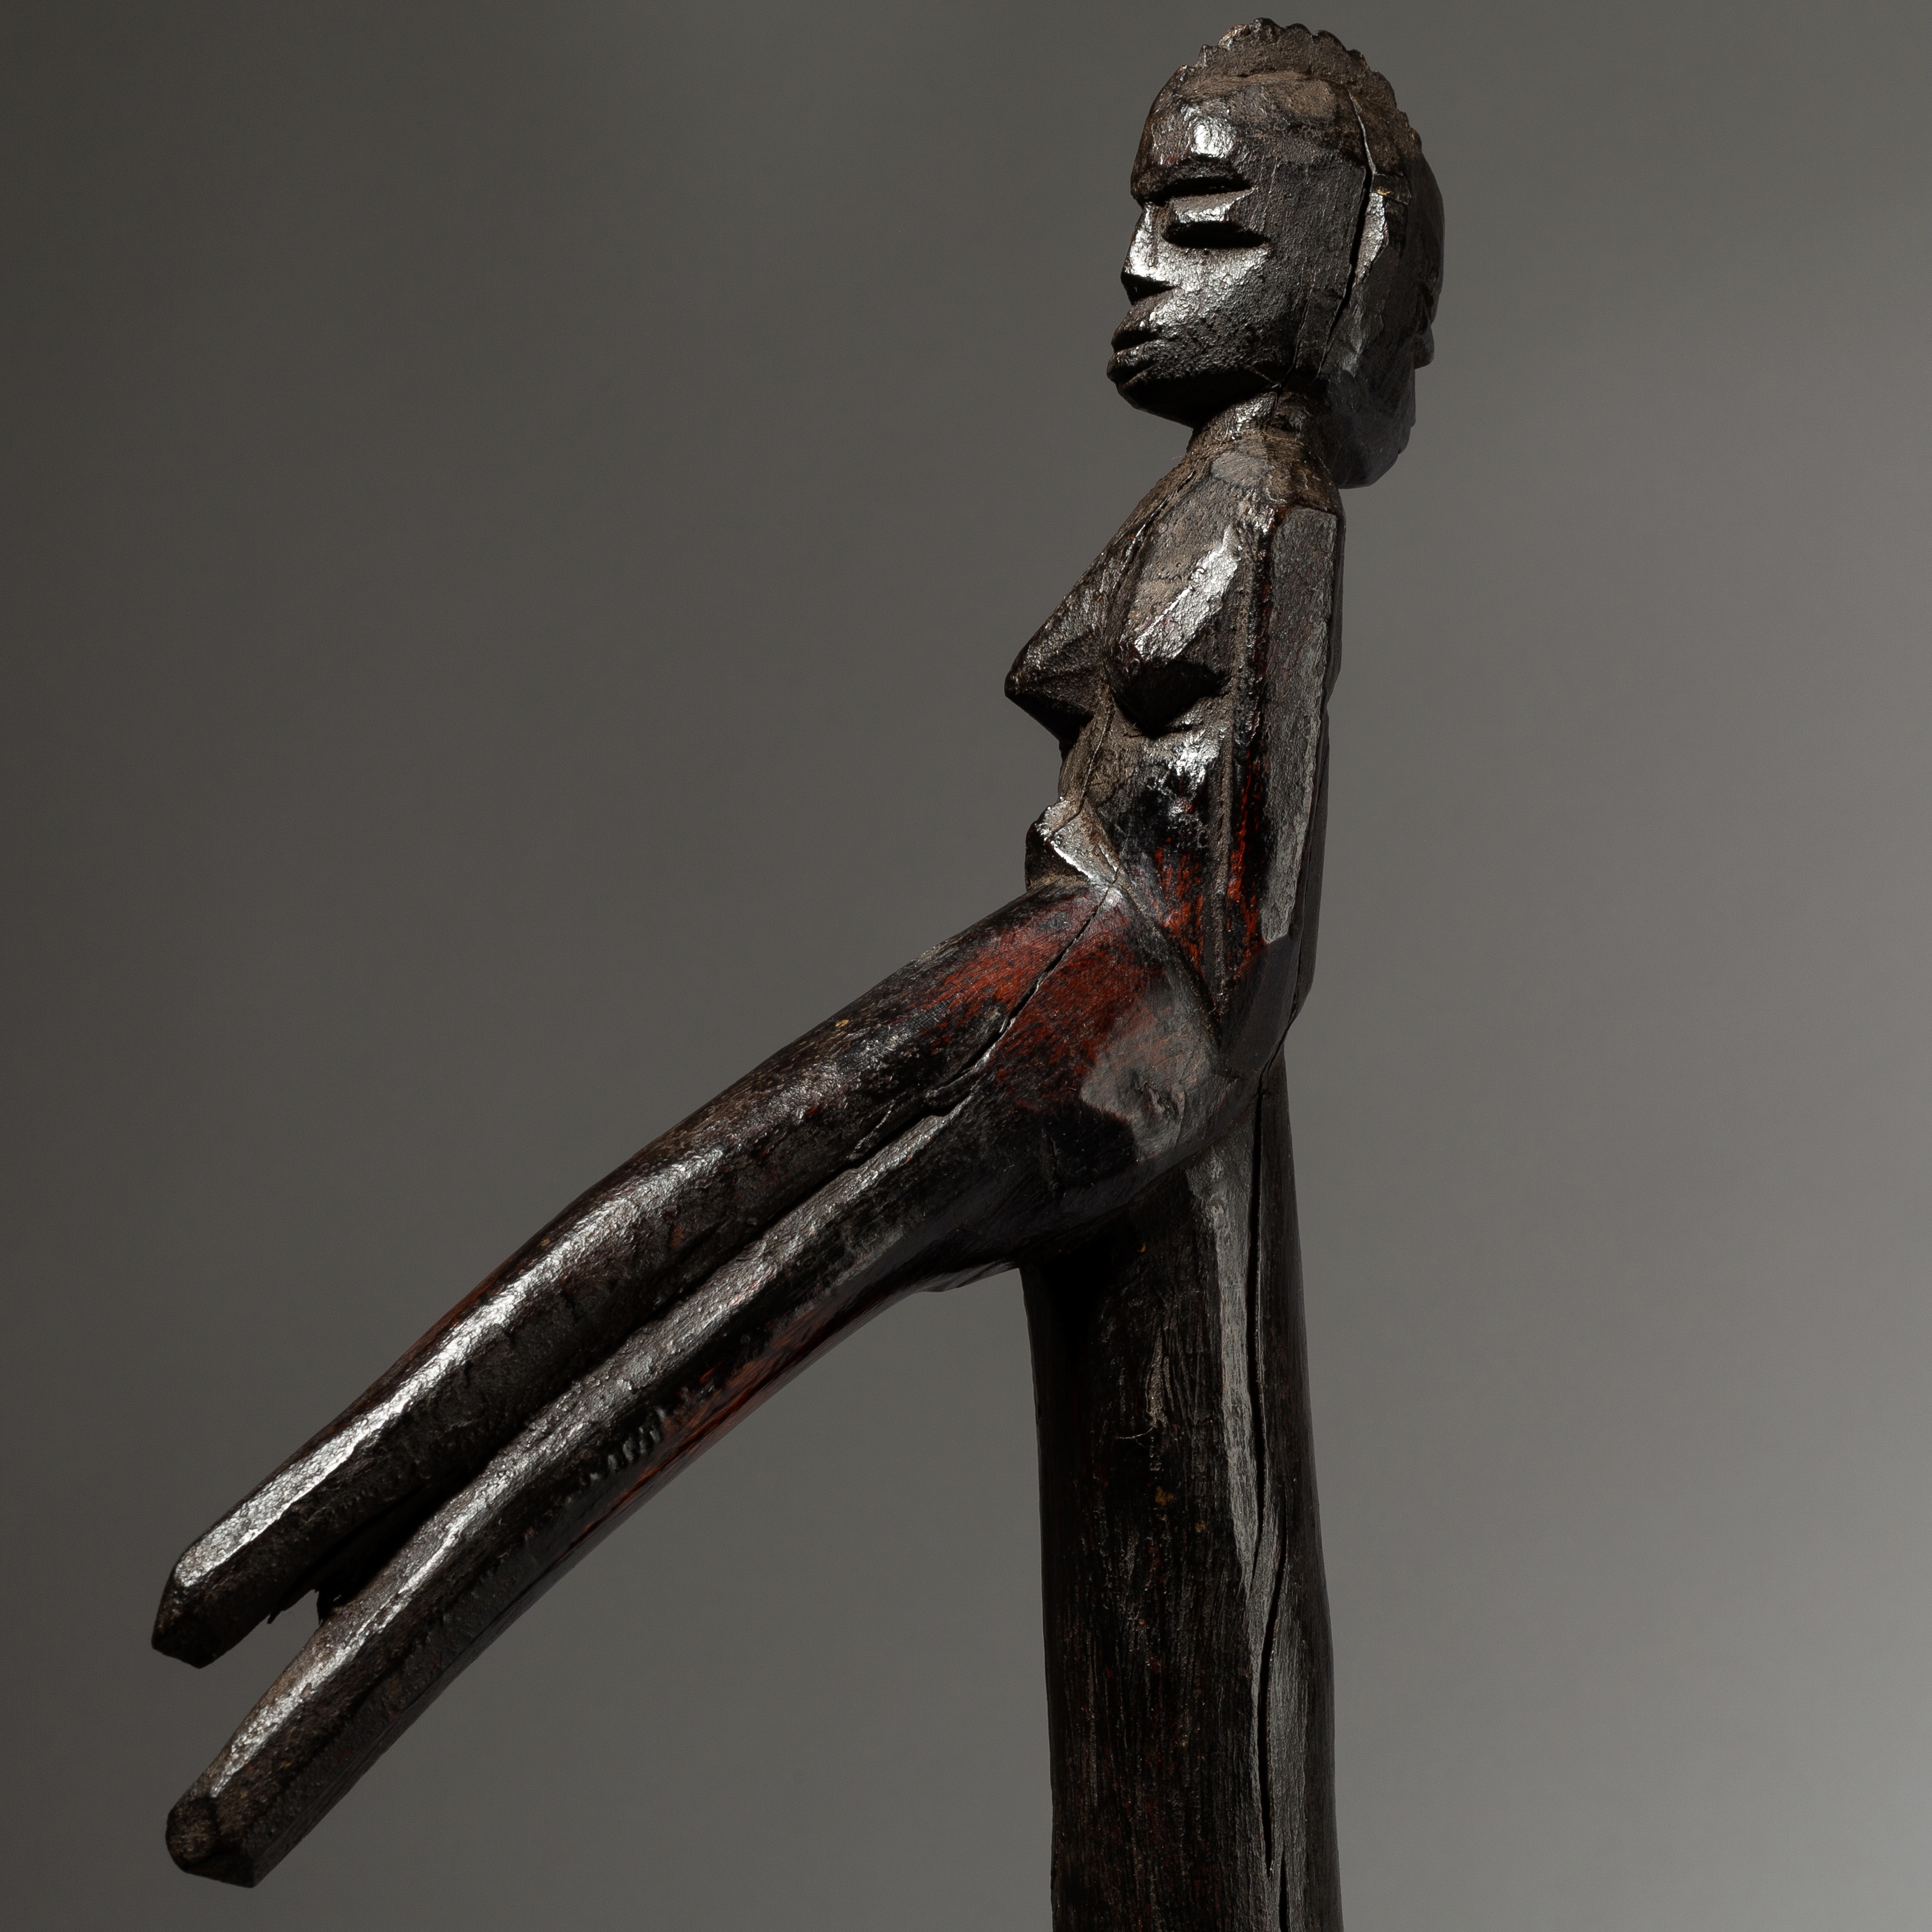 AN ALMIGHTY LOBI ELDERS CROOK FROM THE IVORY COAST, W AFRICA ( No 4032 )